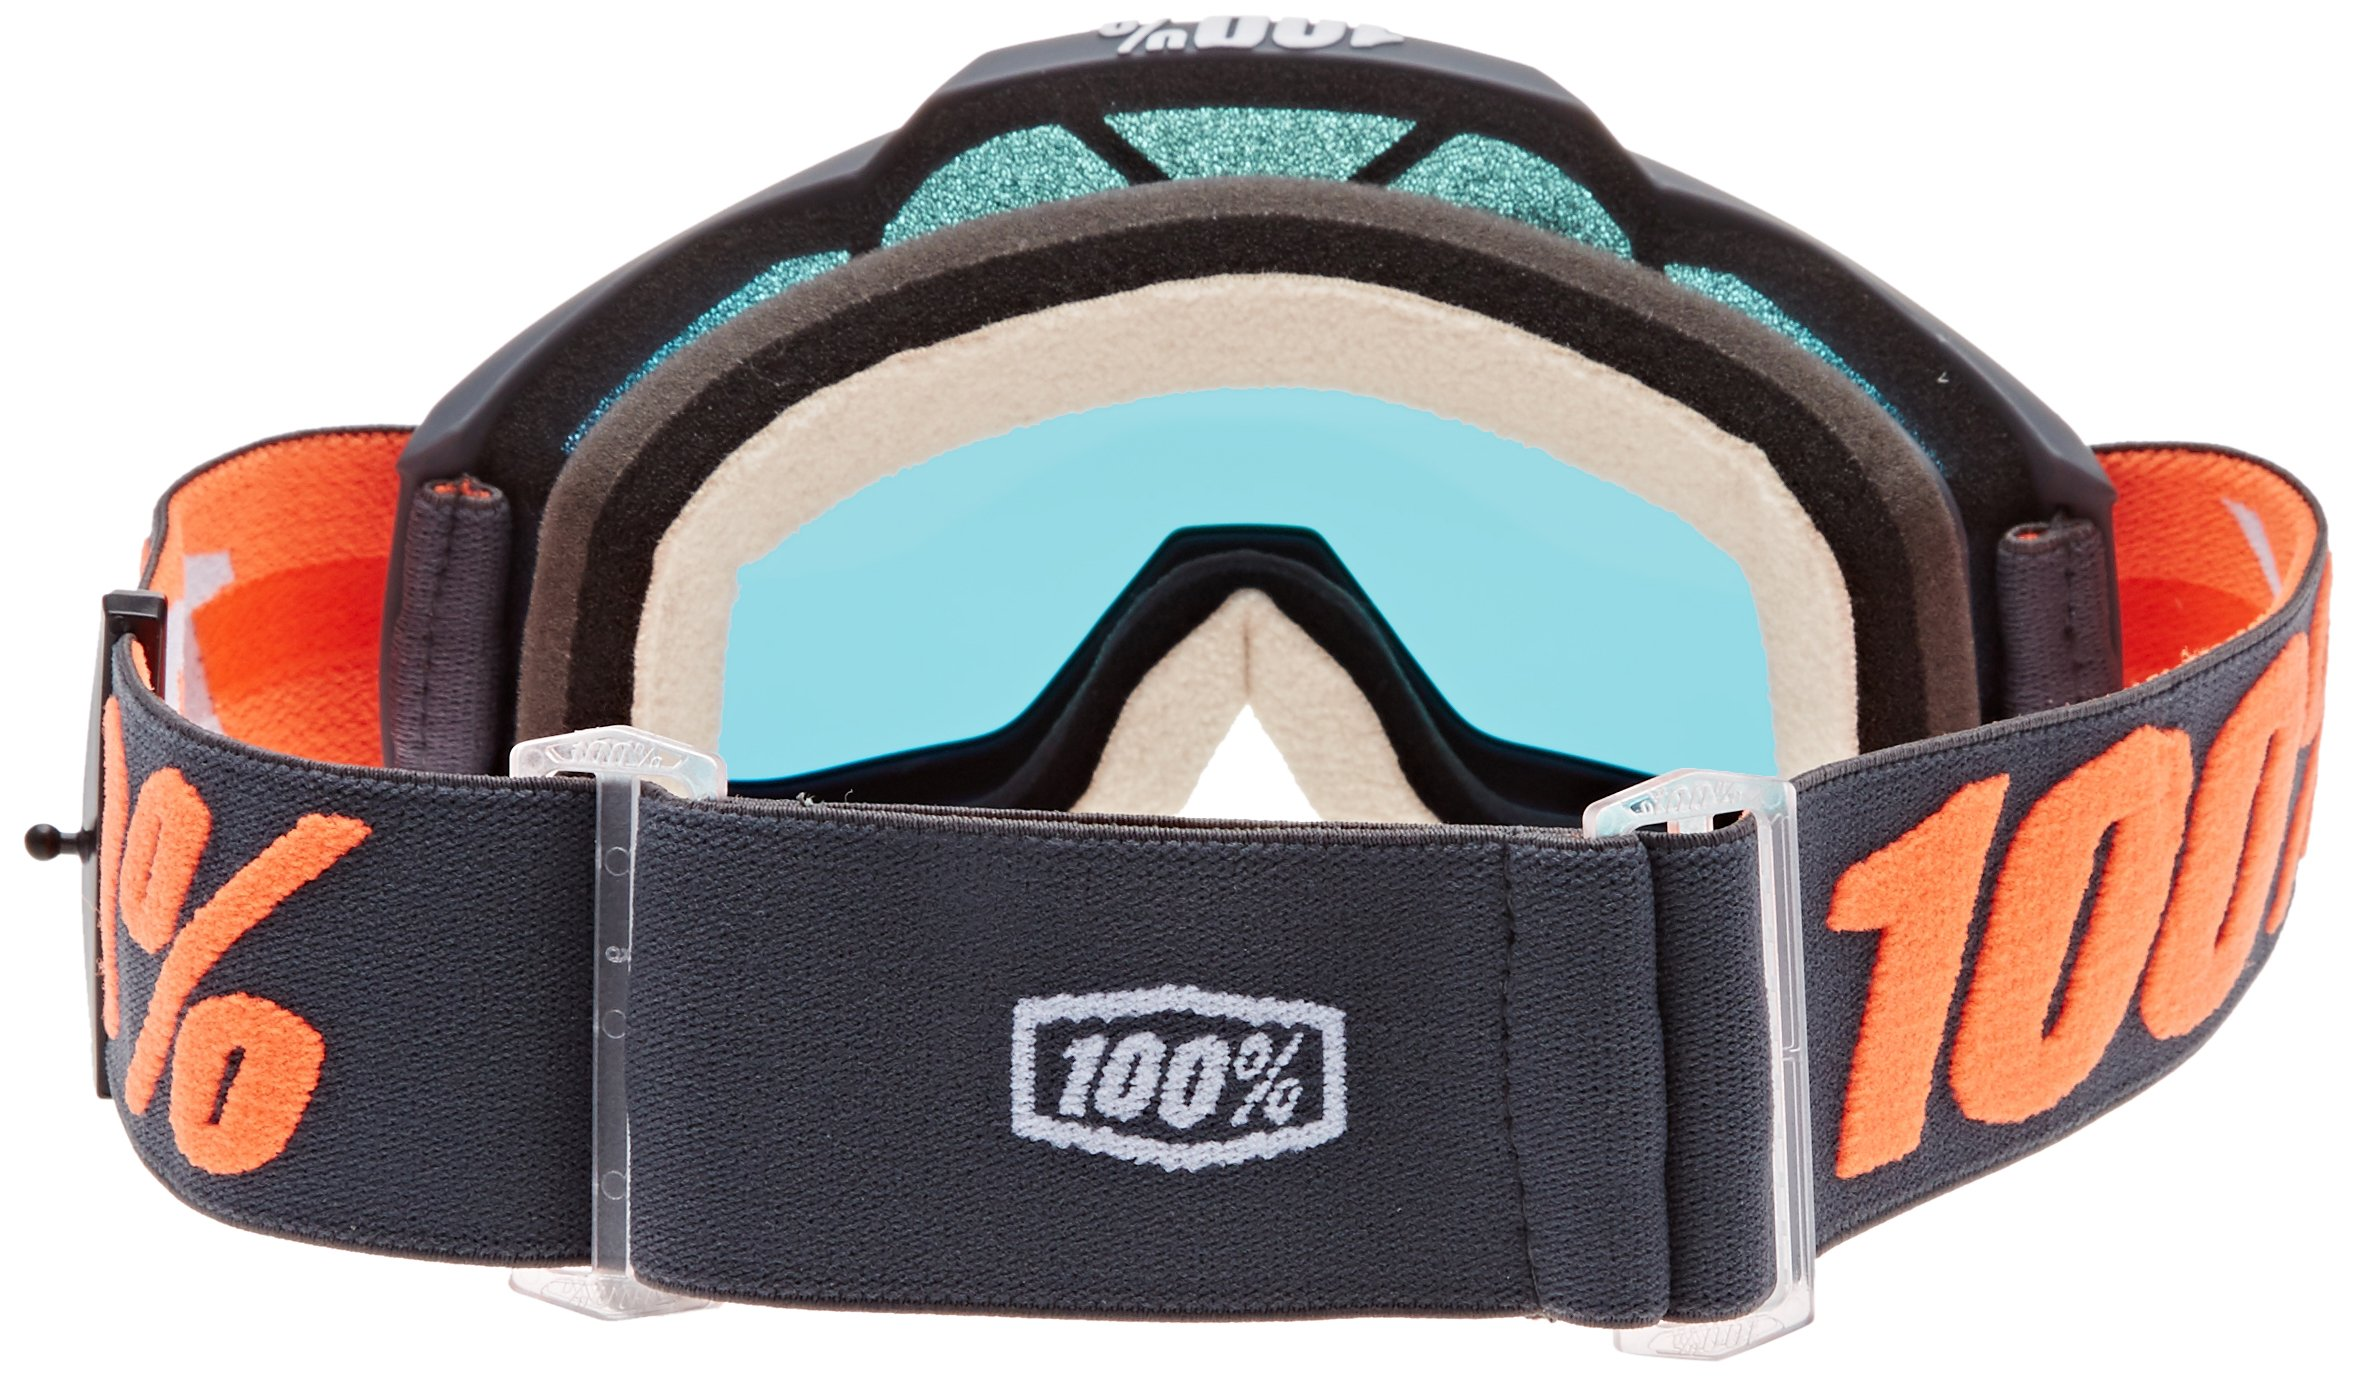 100% 50210-025-02 unisex-adult Goggle (Gunmetal,Mirror Red,One Size) (ACCURI ACC Gray Multi-layer Mirror Lens/Red) by 100%